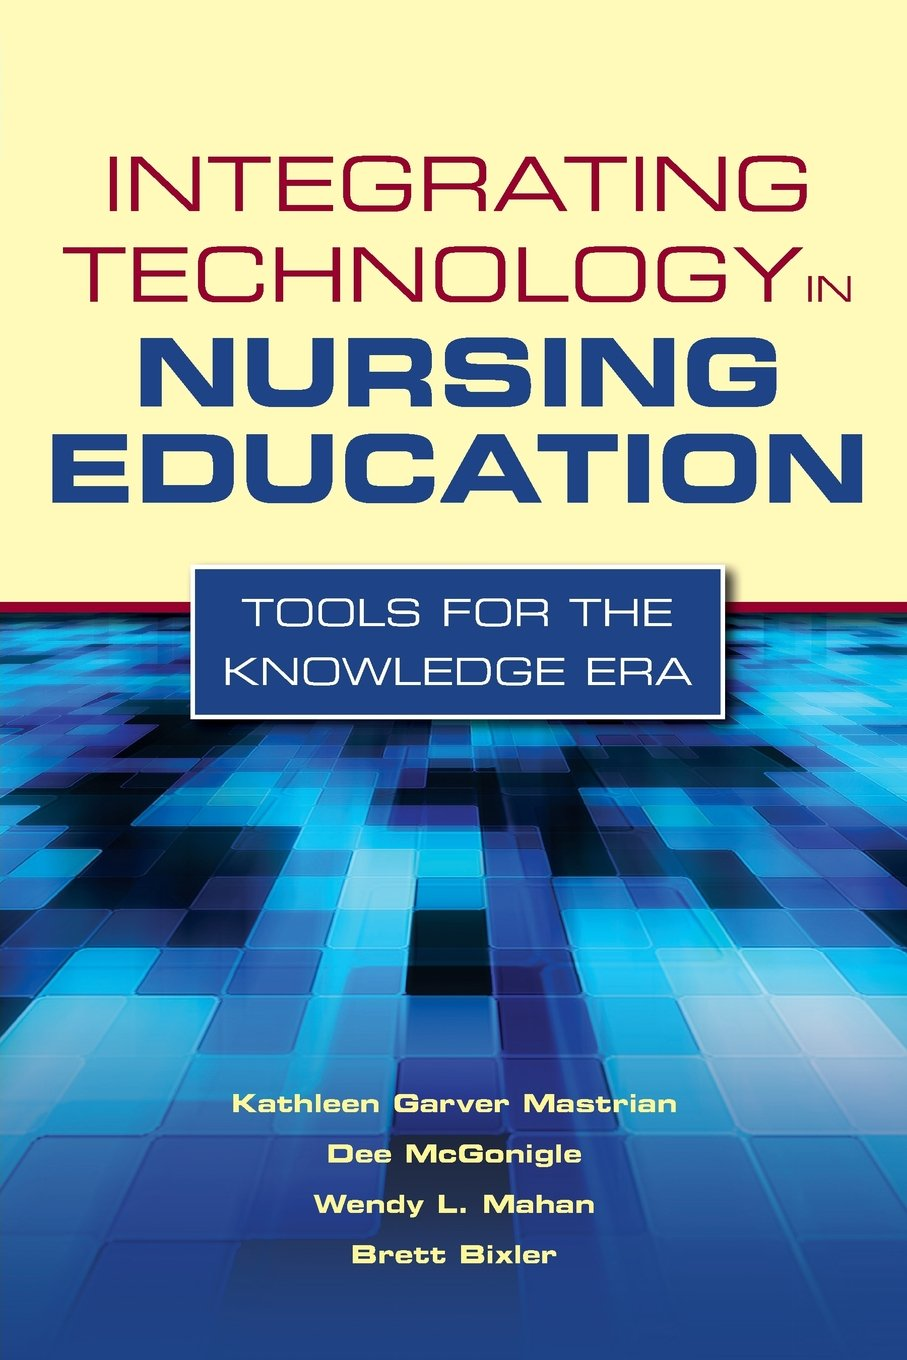 Integrating Technology in Nursing Education: Tools for the Knowledge Era by Jones & Bartlett Learning